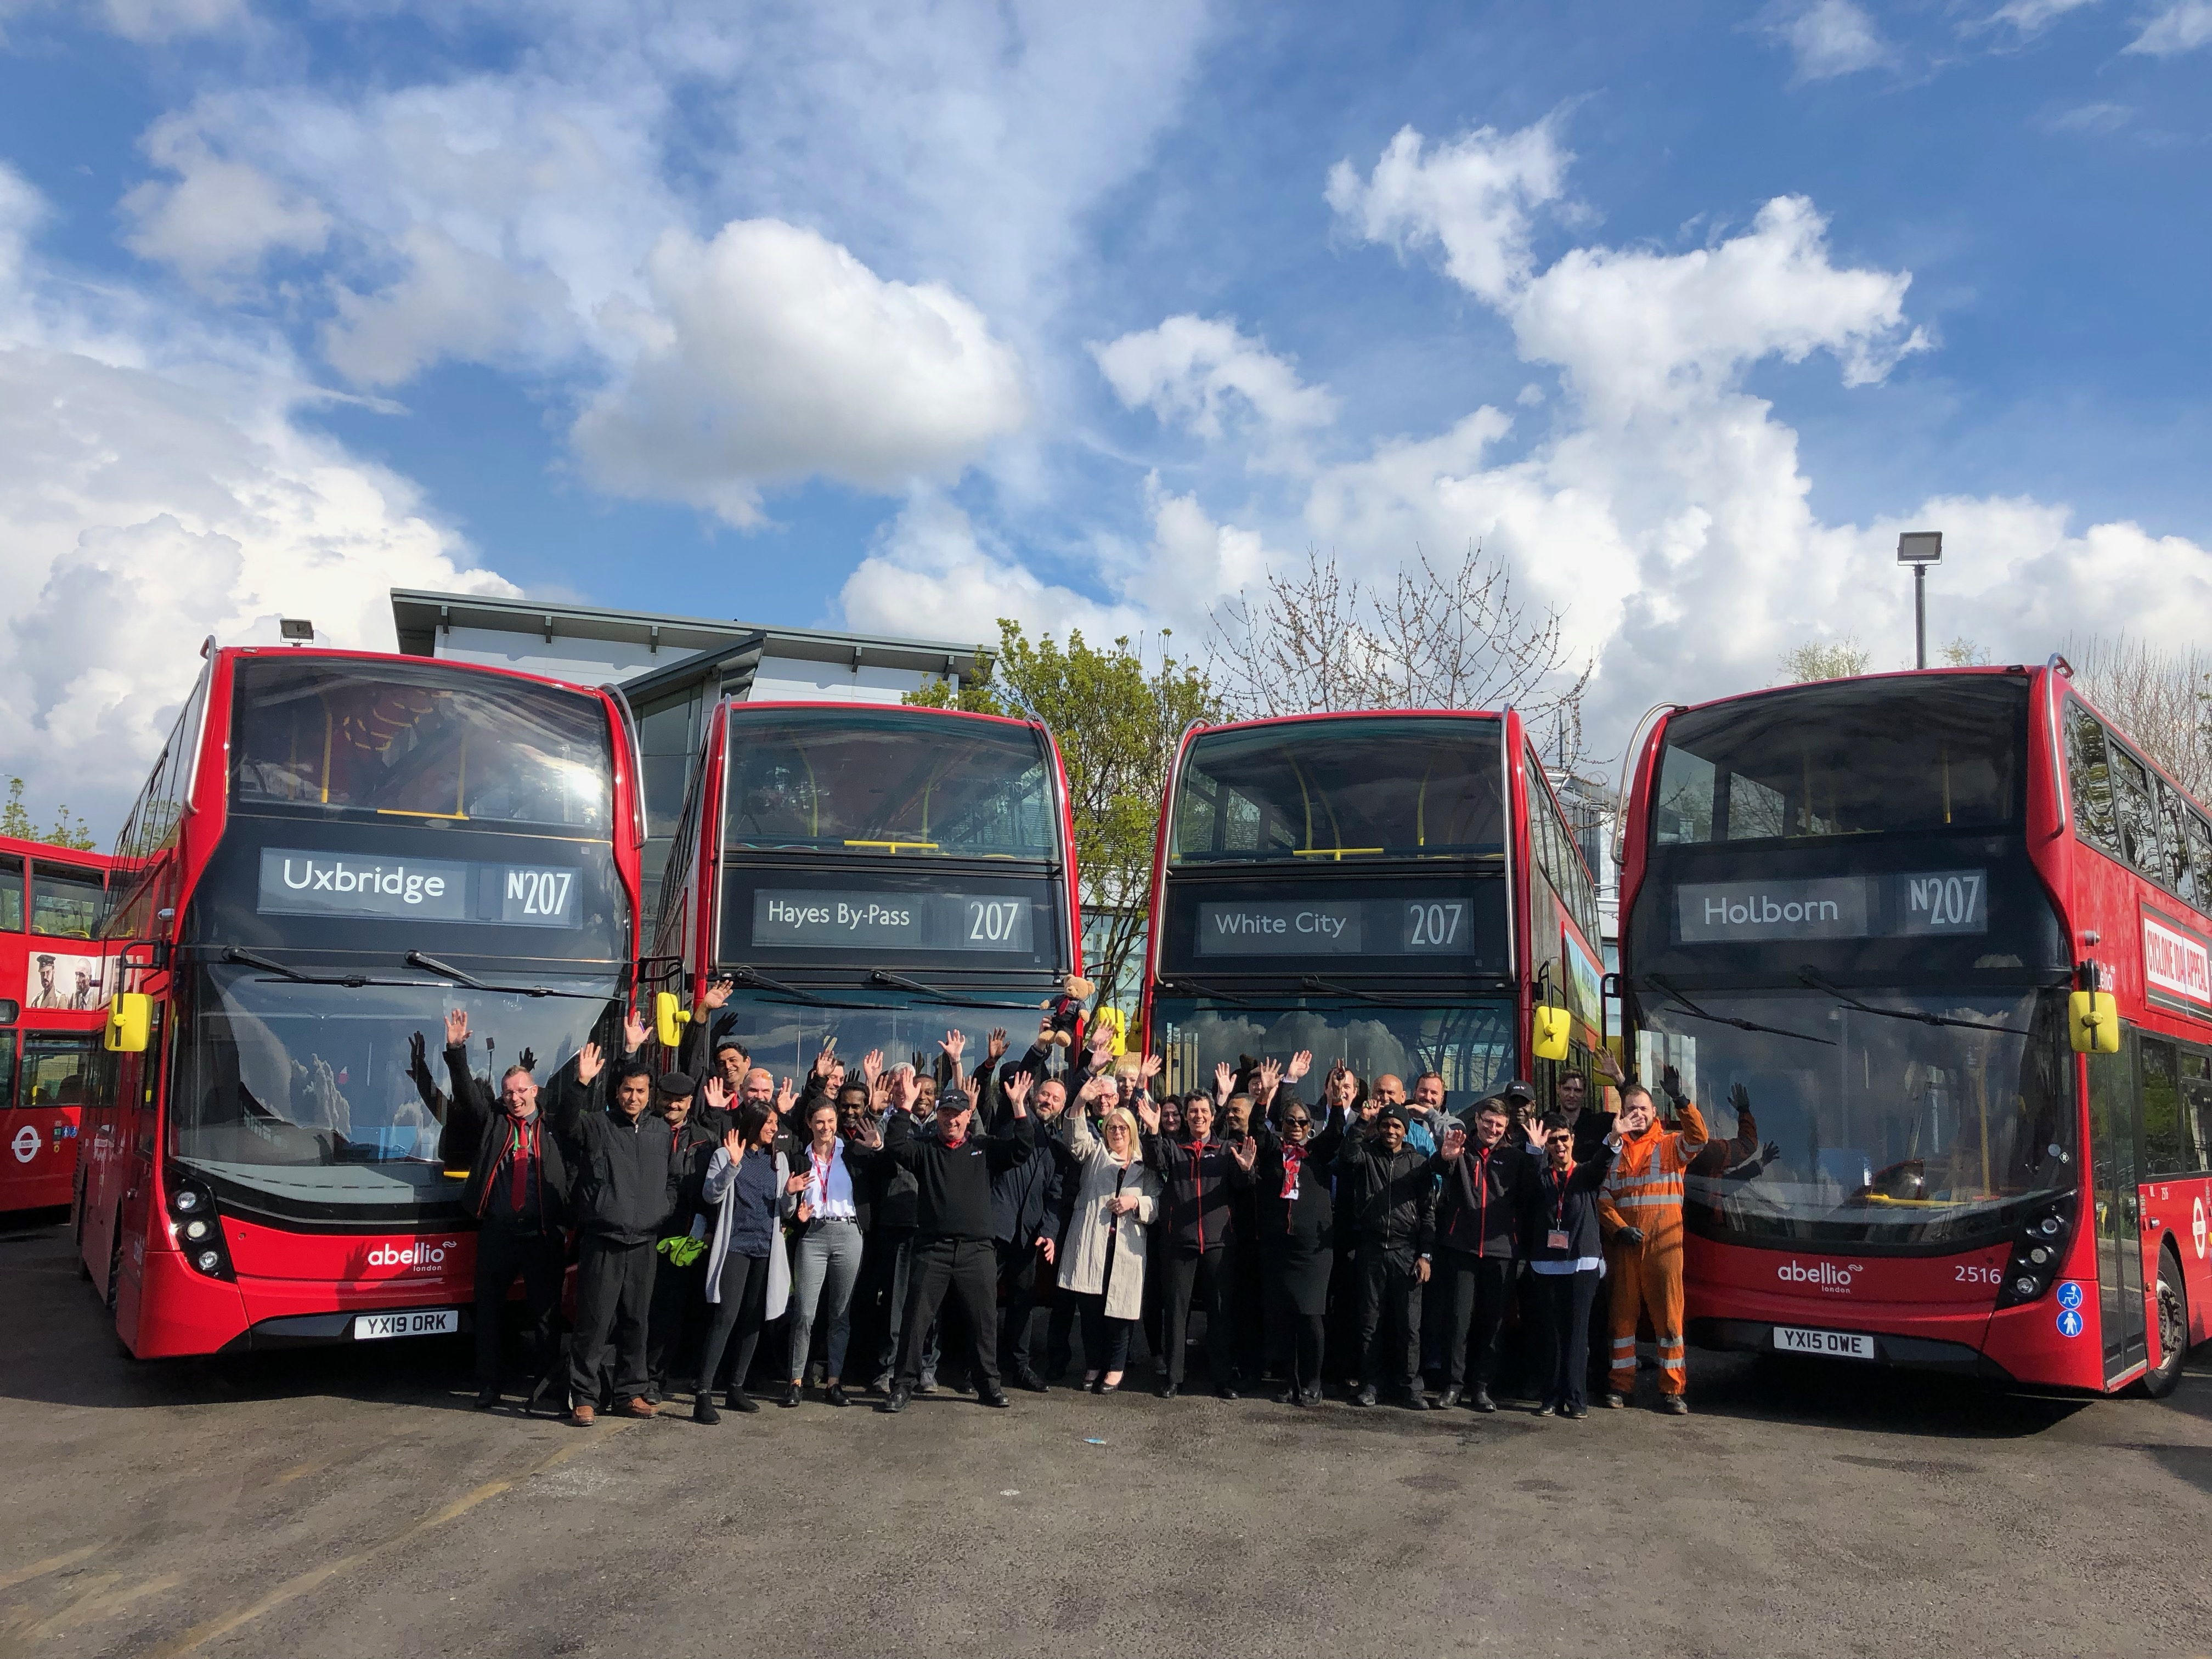 Abellio commence operation of routes 207 & N207